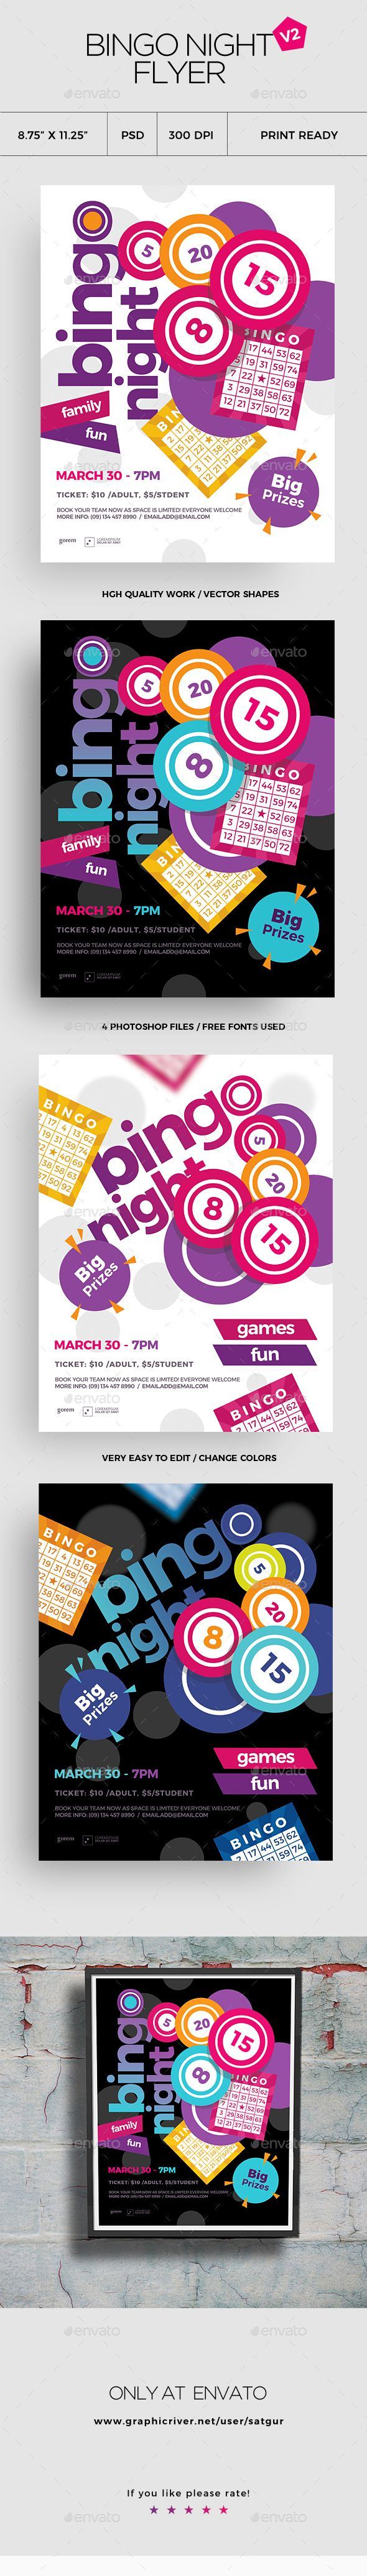 54 best bingo images on pinterest gift baskets gift ideas and